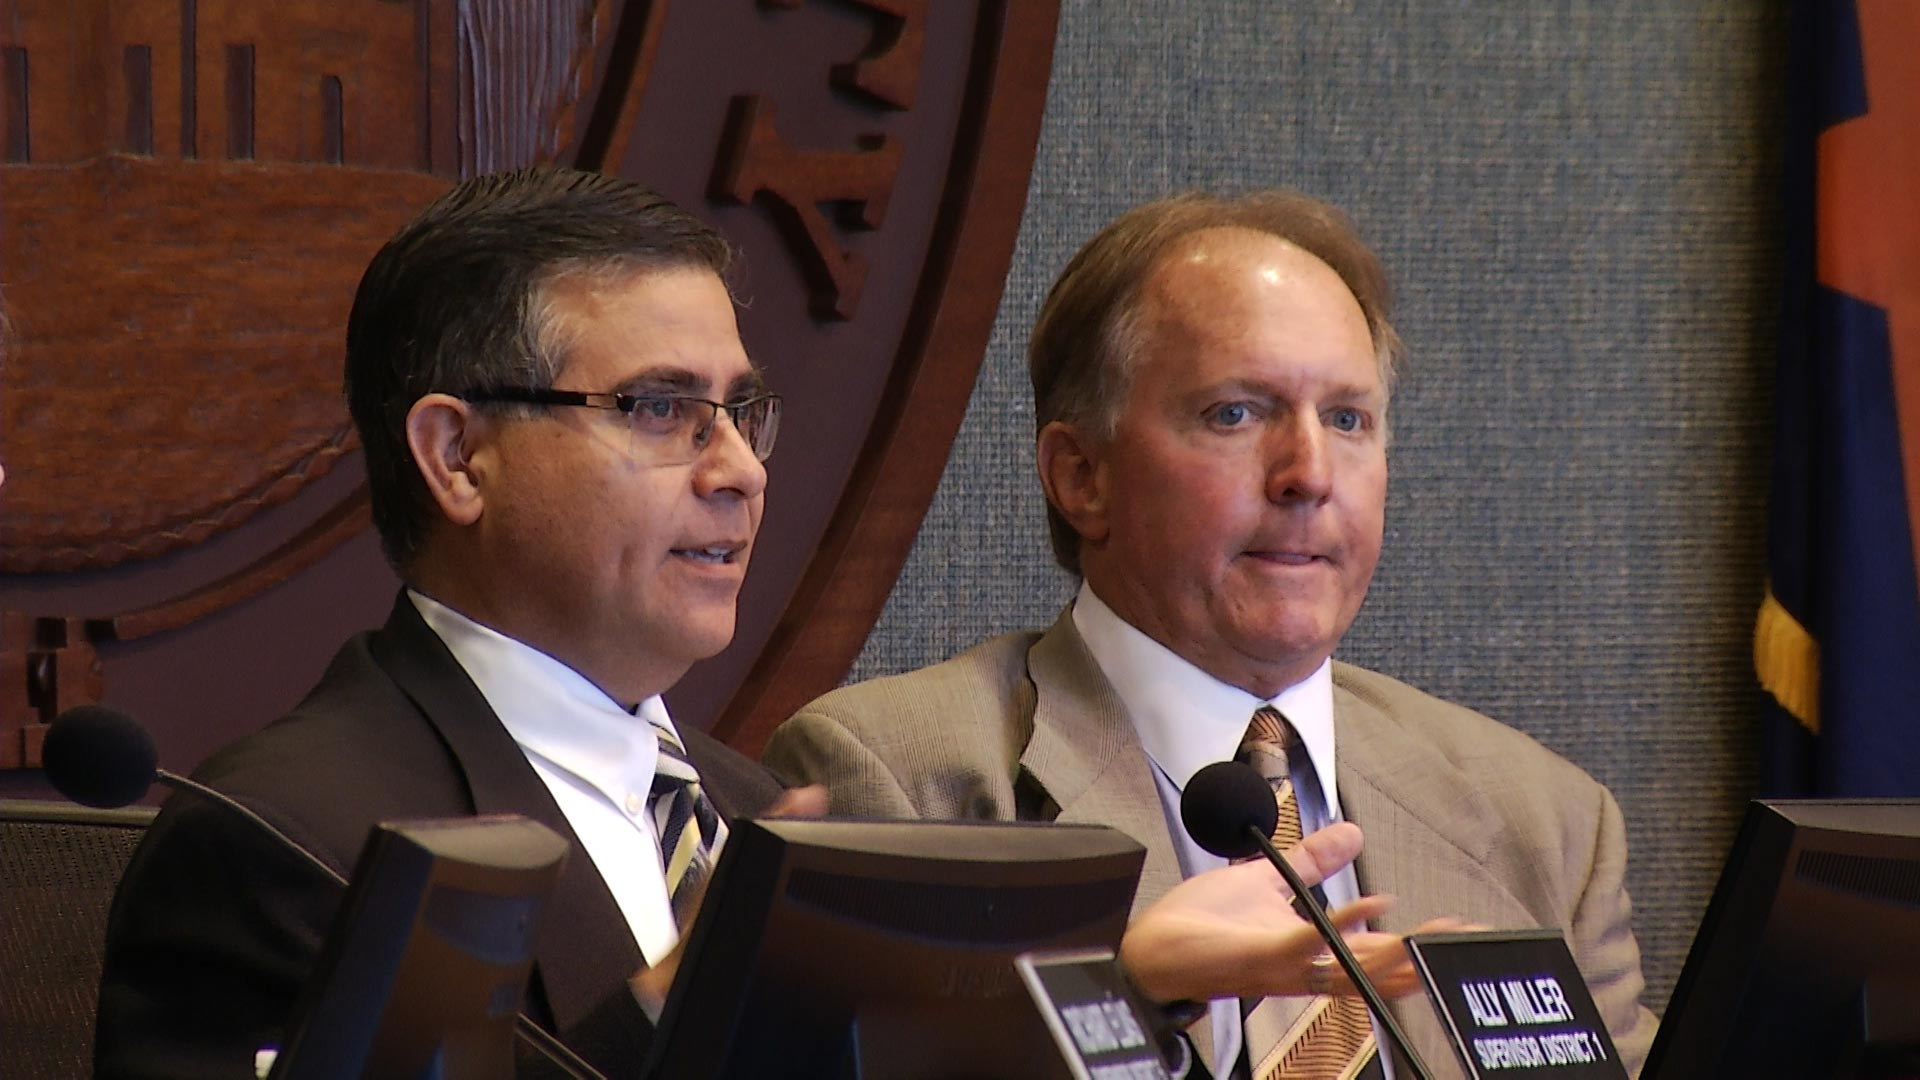 Pima County supervisors Ramón Valadez (left) and Steve Christy (right) at a Board of Supervisors meeting.